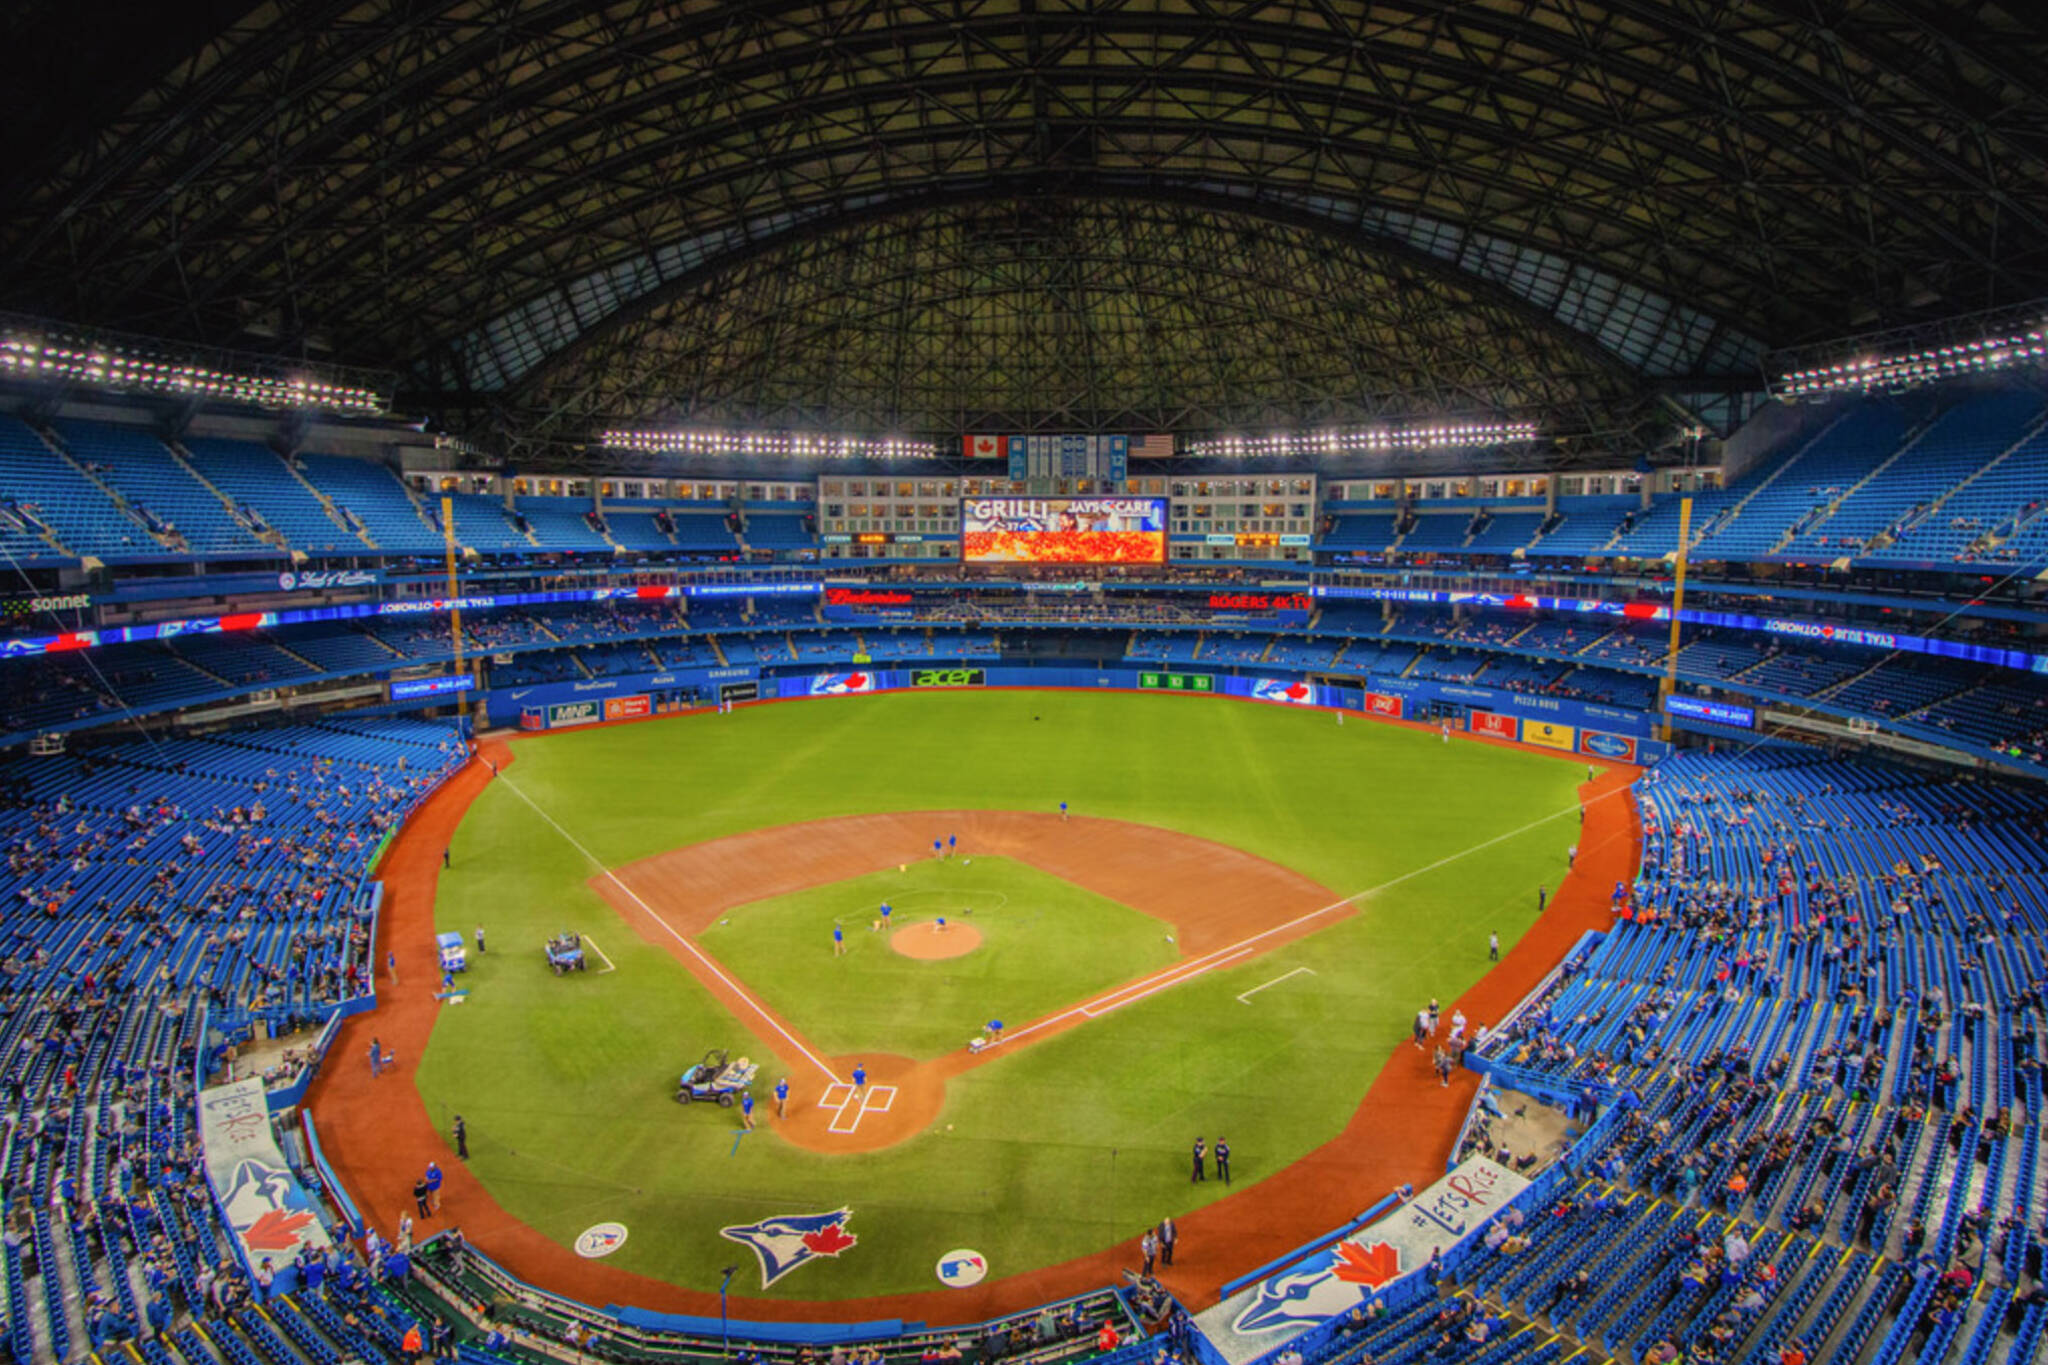 Rumours swirl that Rogers Centre might get a new name